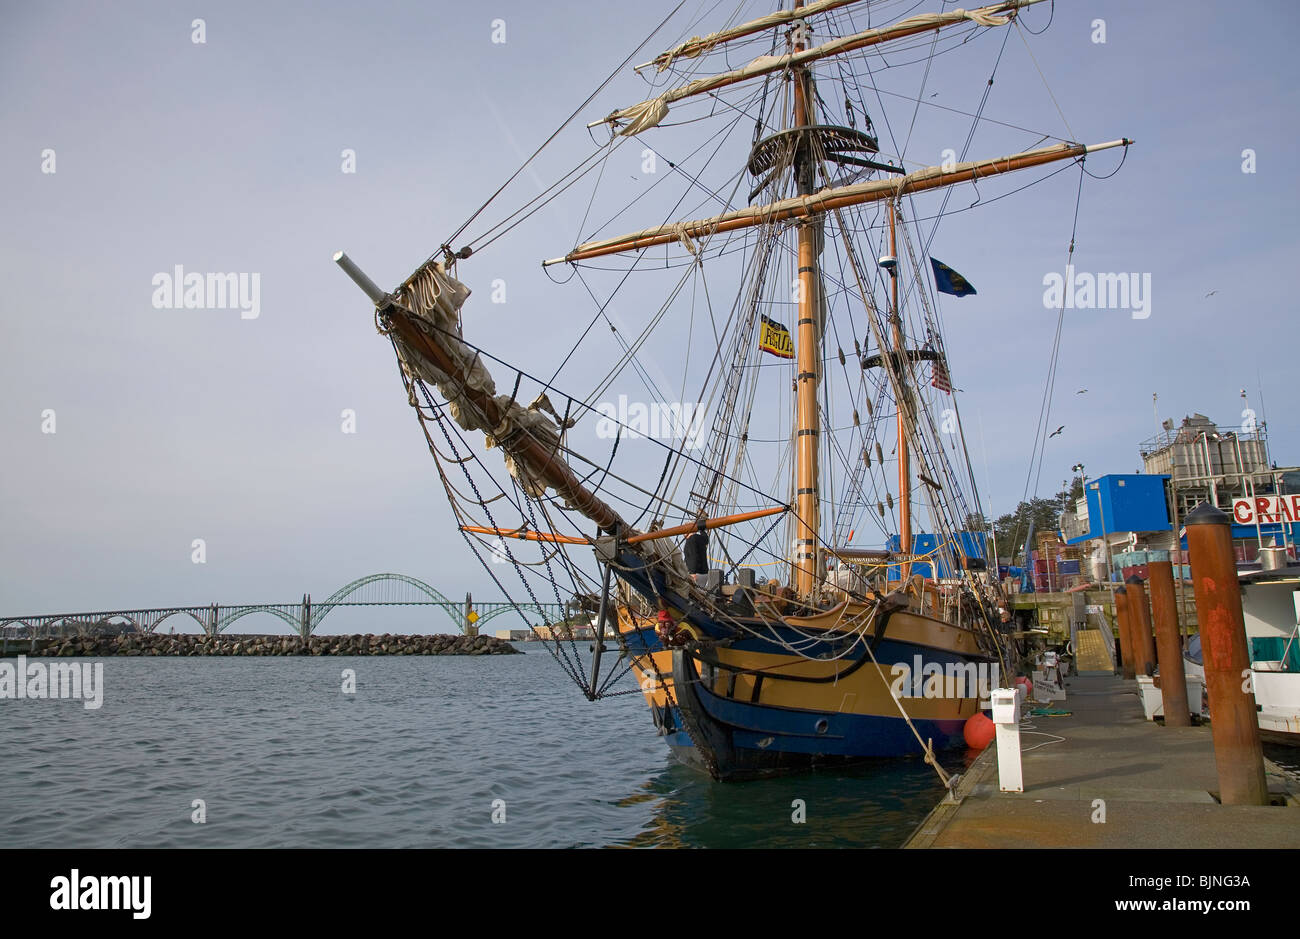 A square rigged tall sailing ship tied to the dock in Newport, Oregon - Stock Image